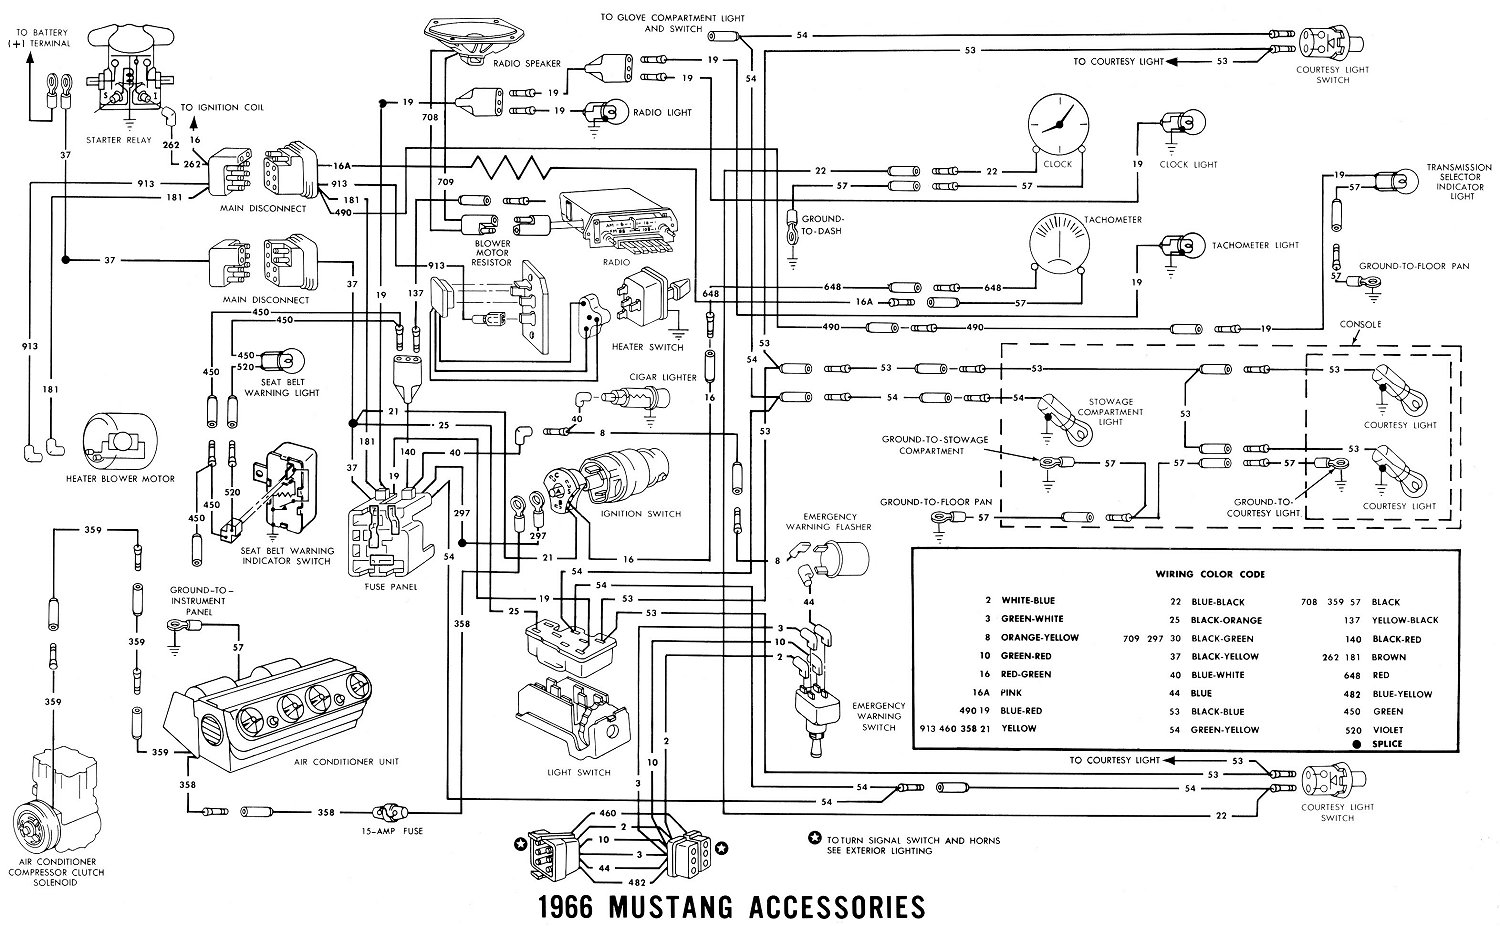 61 Chevy Truck Wiring Diagram on 1961 chevy c10 wiring diagram